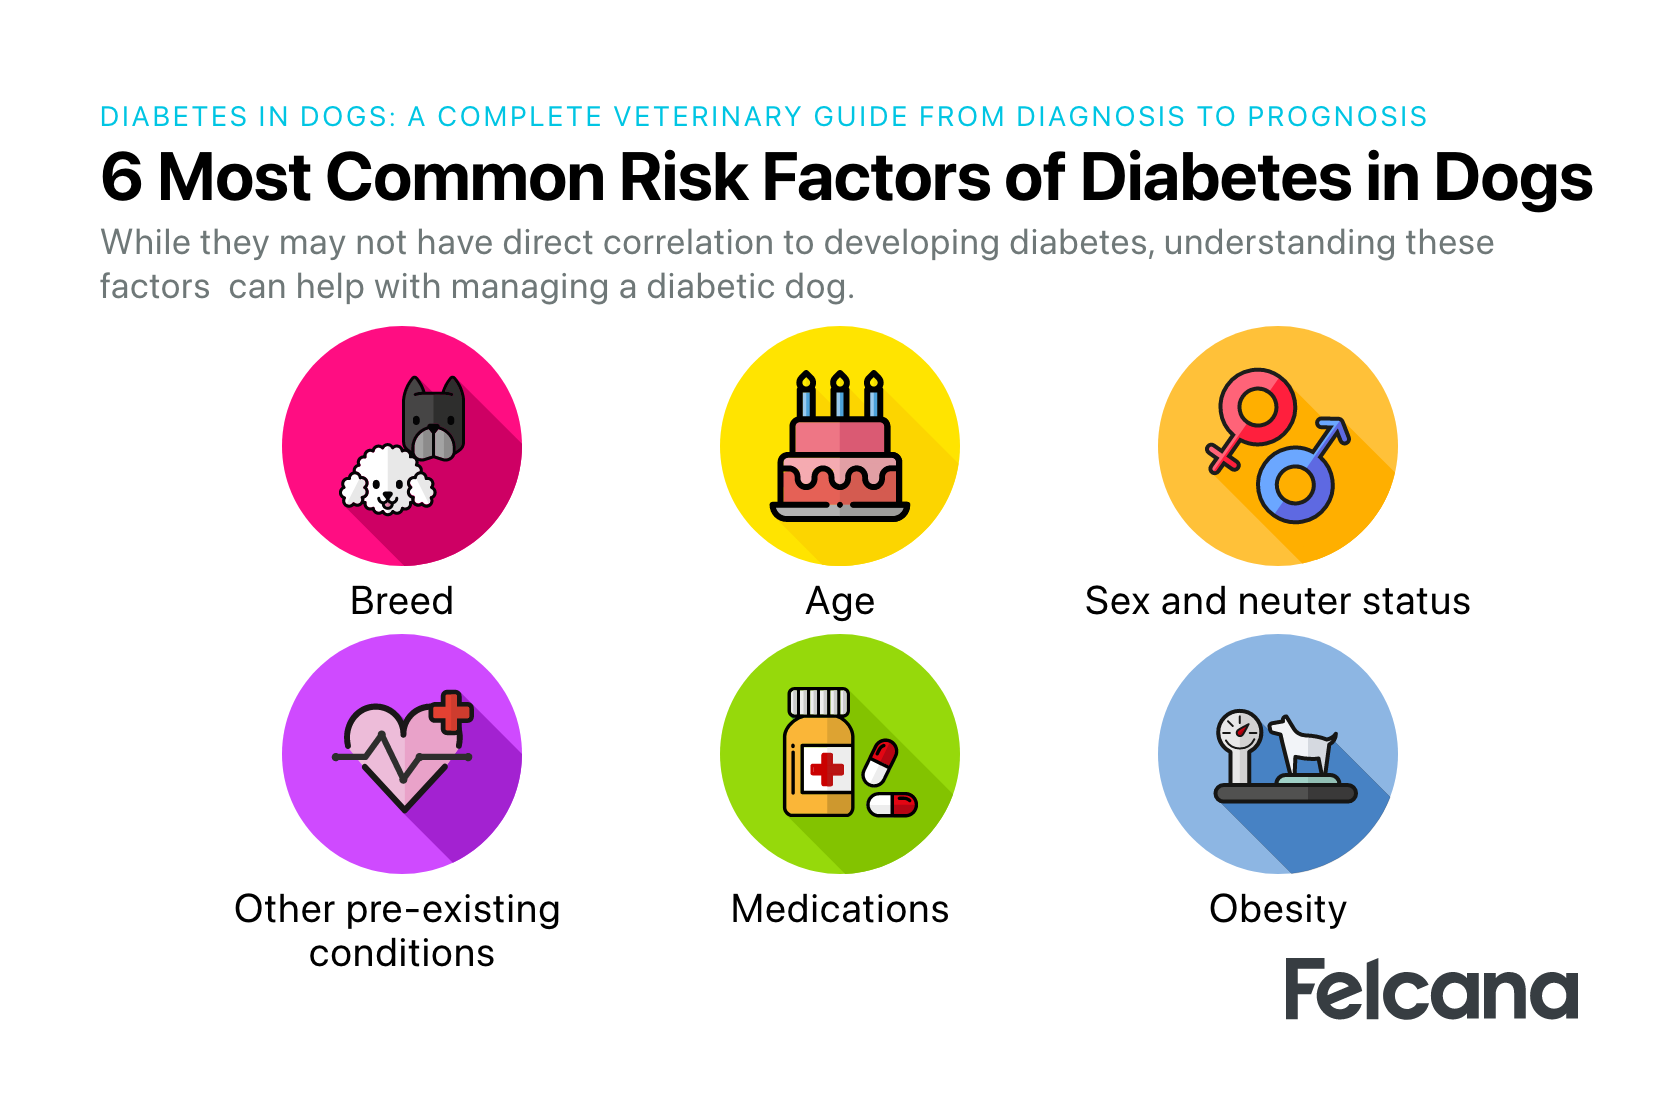 Dog diabetes risk factors, including breed, age, sex, neuter status, pre-existing condition, medications and obesity.